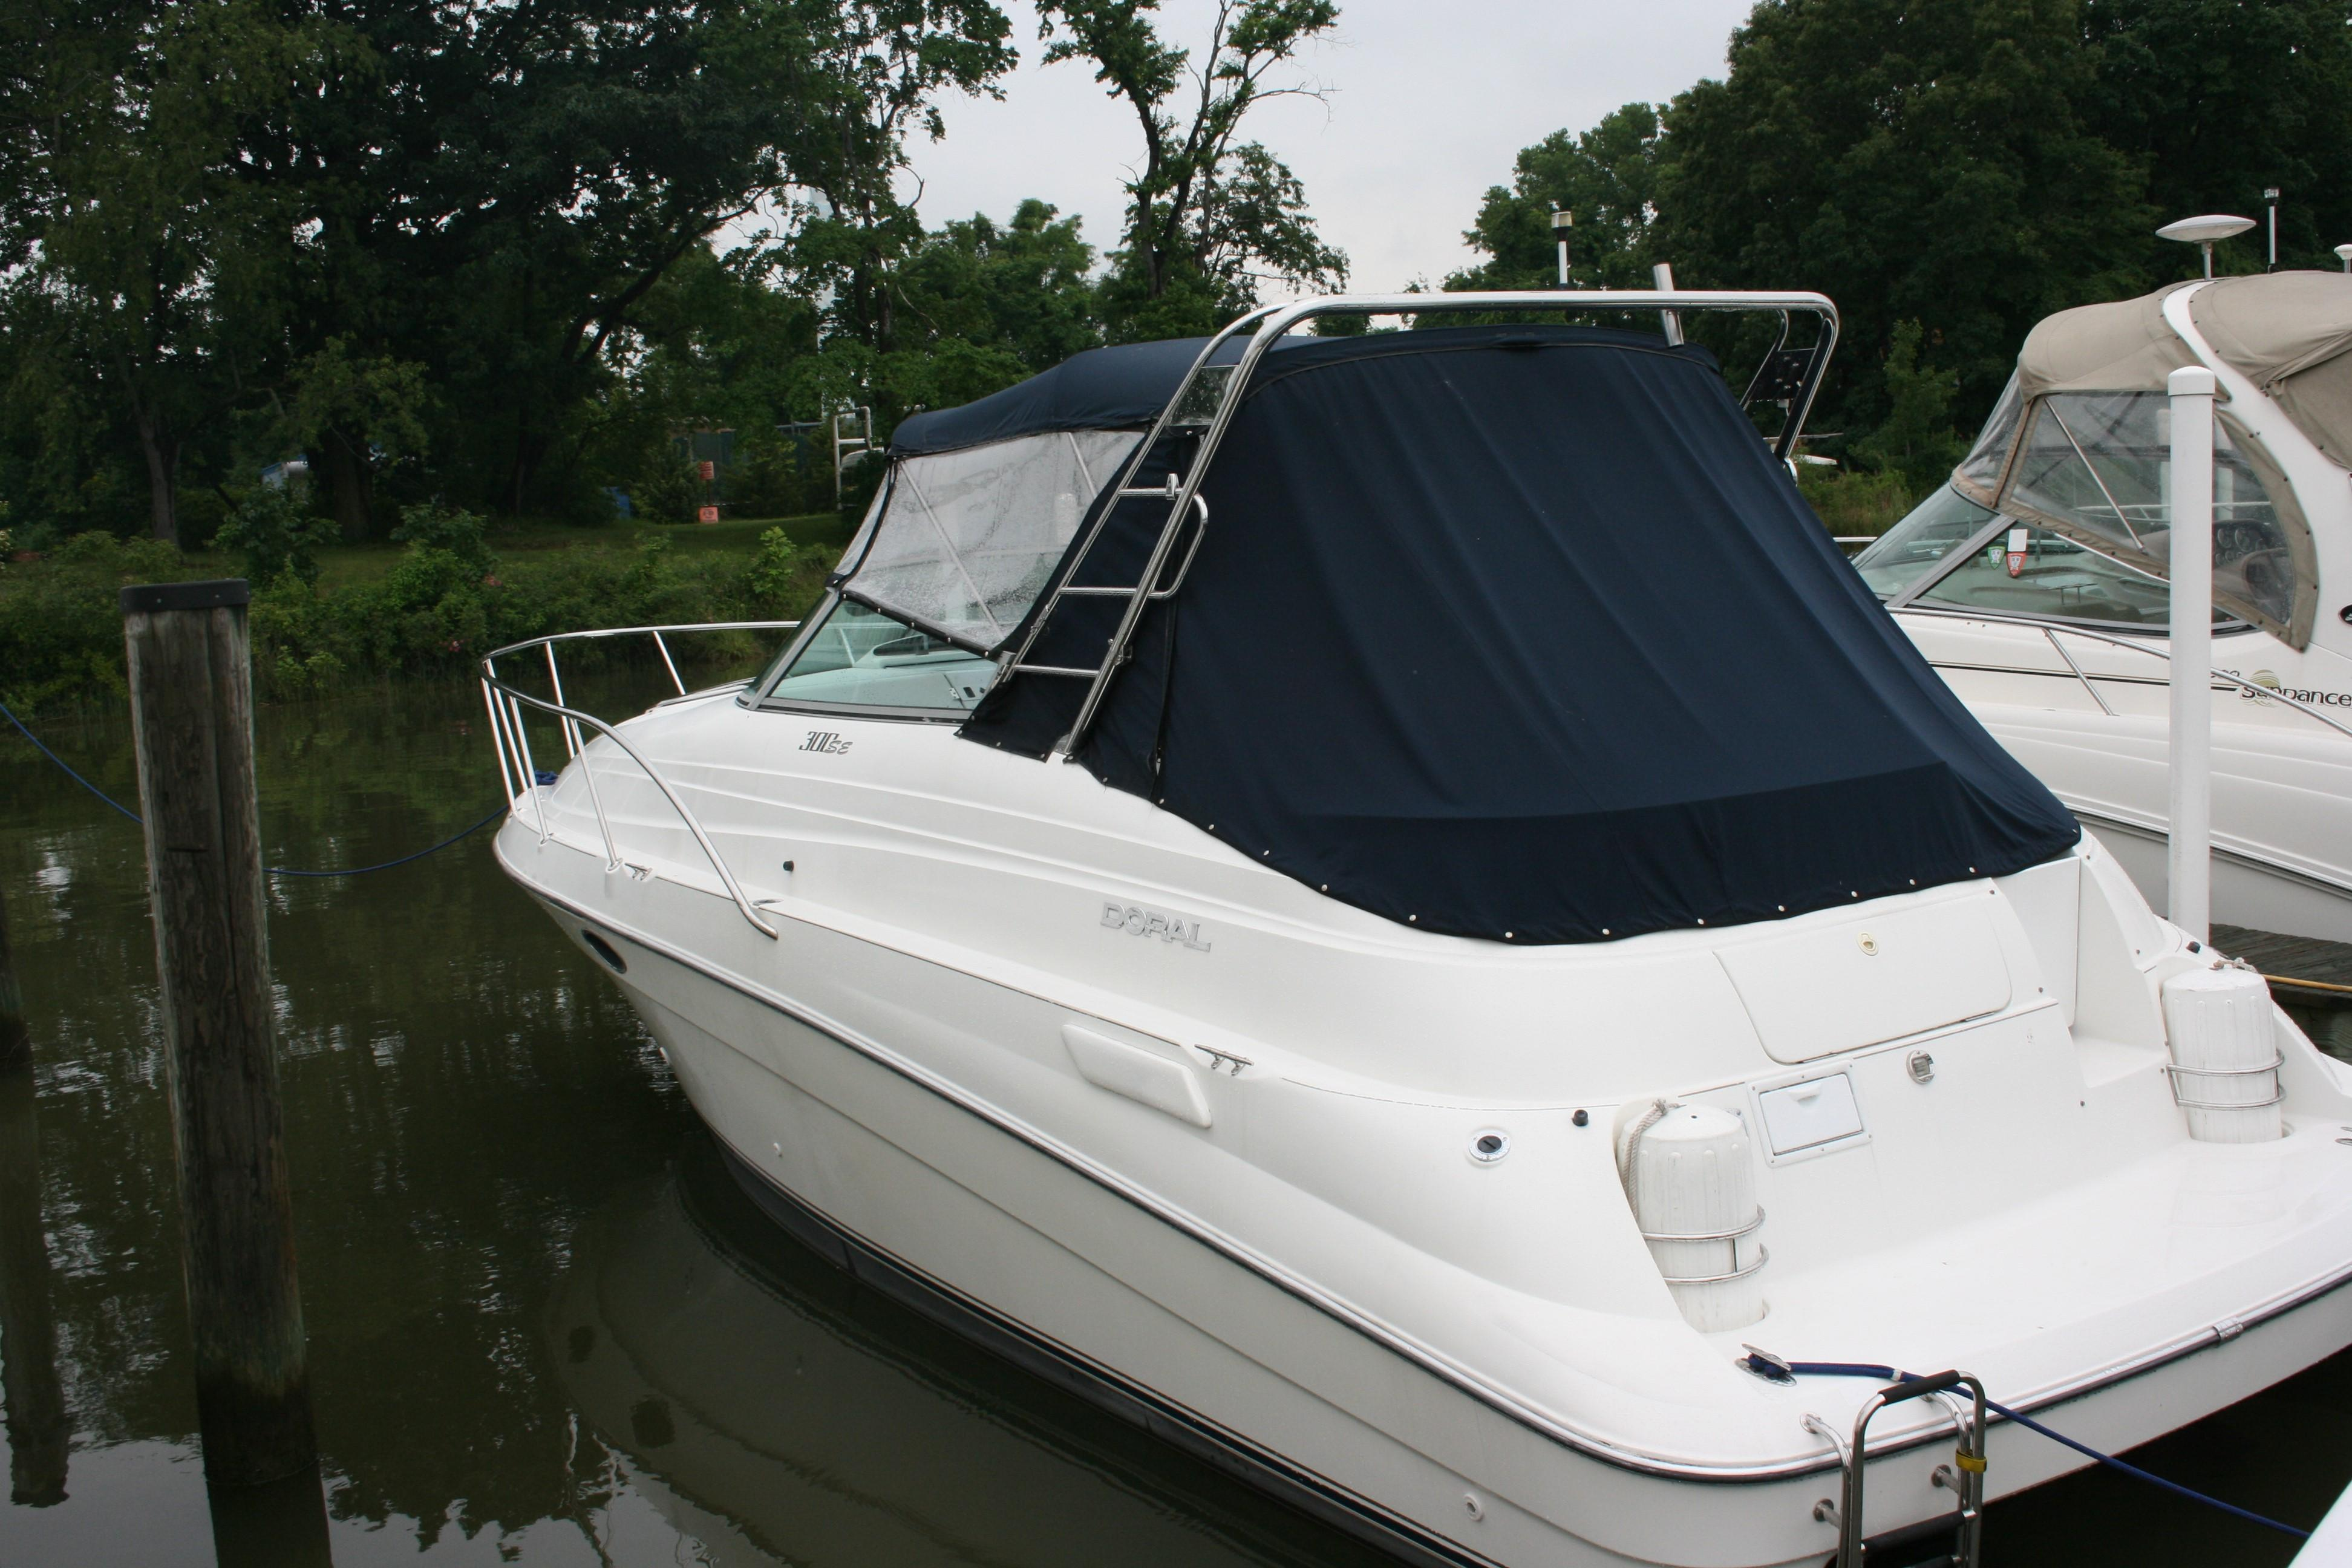 1996 Doral 300 Express Cruiser Power New And Used Boats